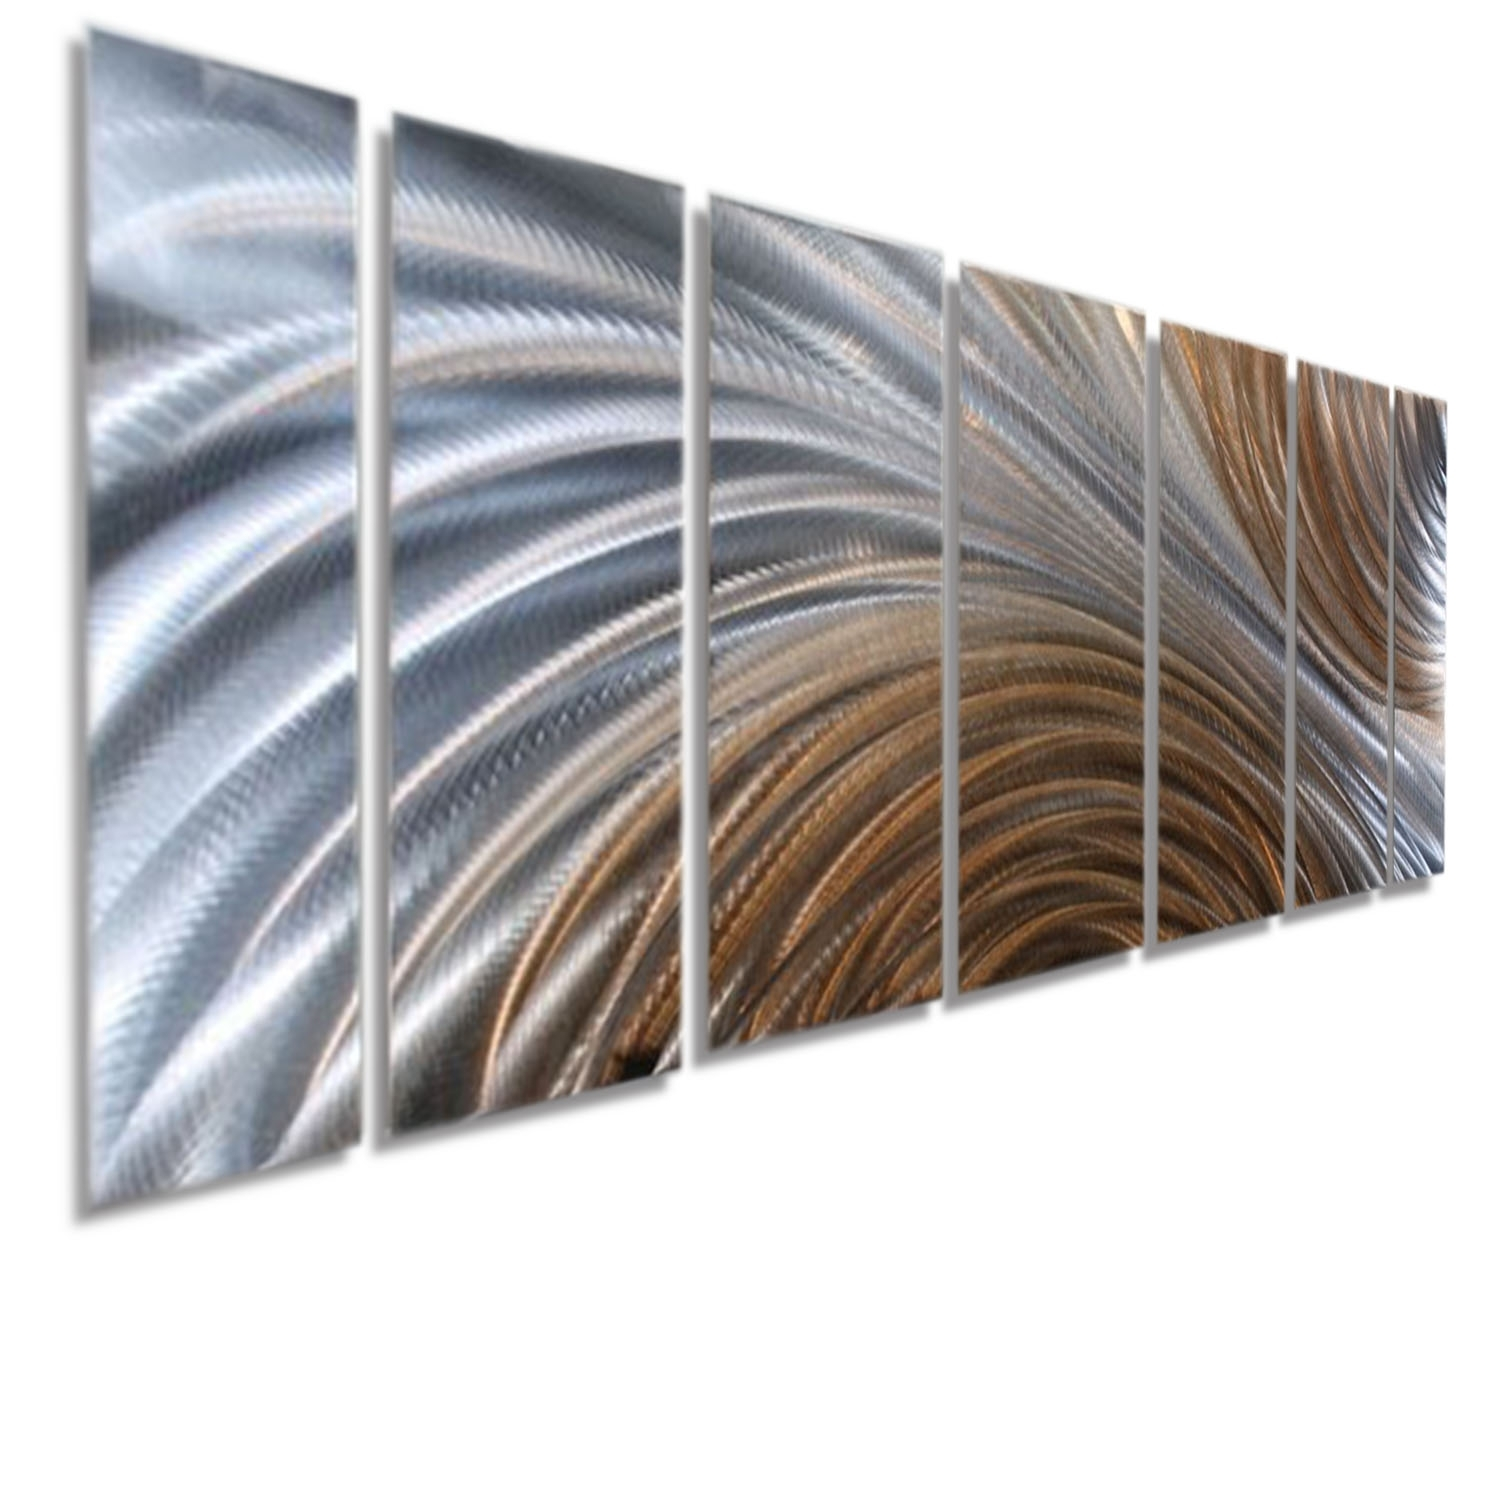 Classy 10+ Abstract Metal Wall Art Design Inspiration Of Best 25+ Regarding Latest Kindred Abstract Metal Wall Art (View 2 of 20)